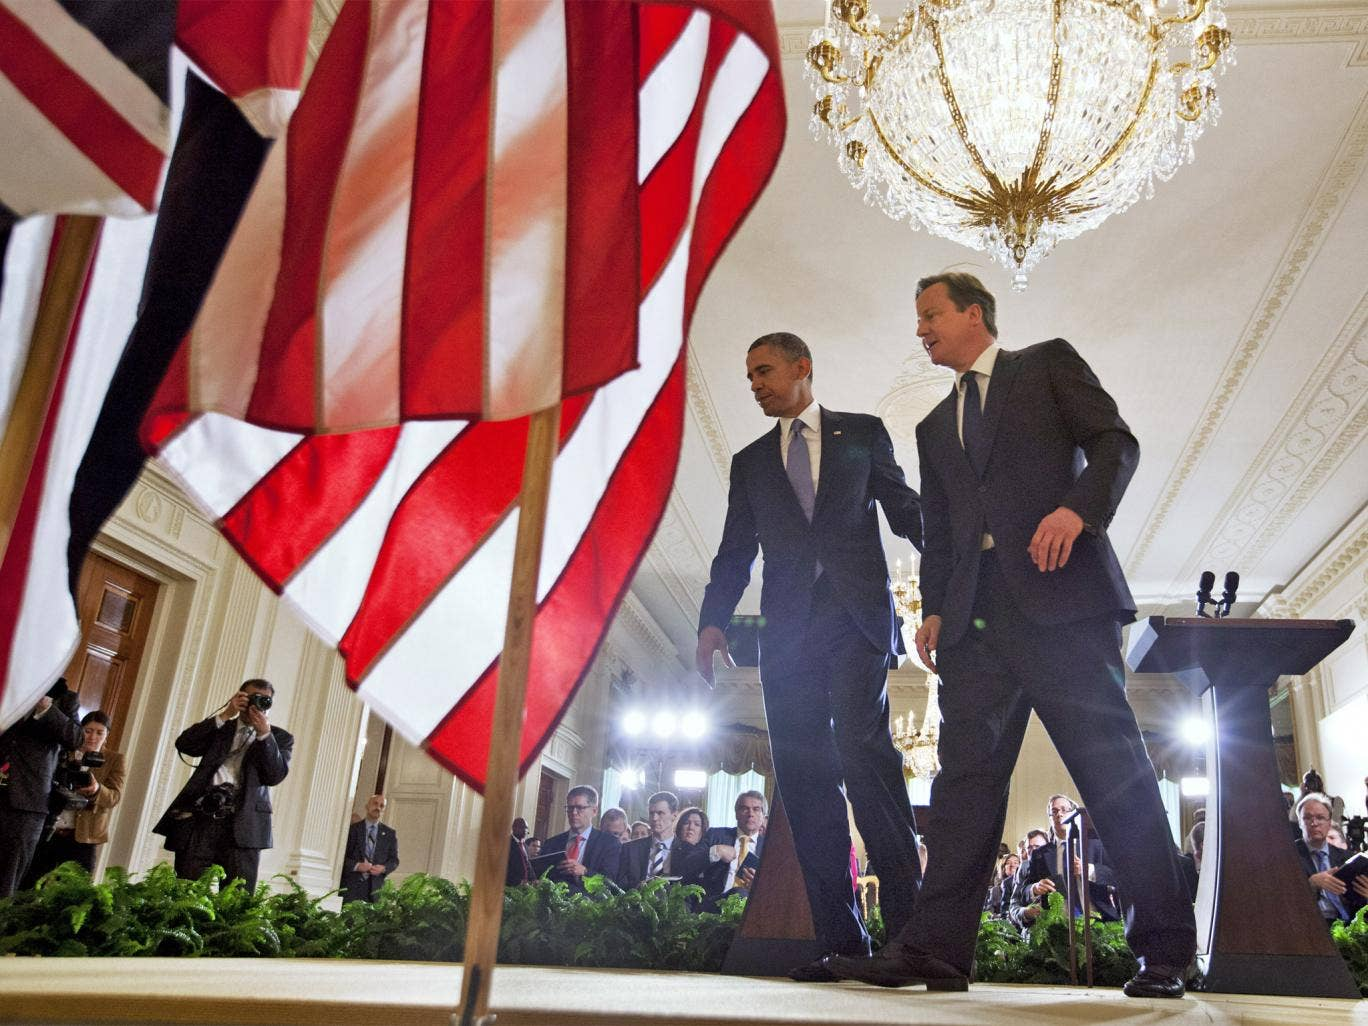 Barack Obama and David Cameron leave their news conference in East Room of the White House